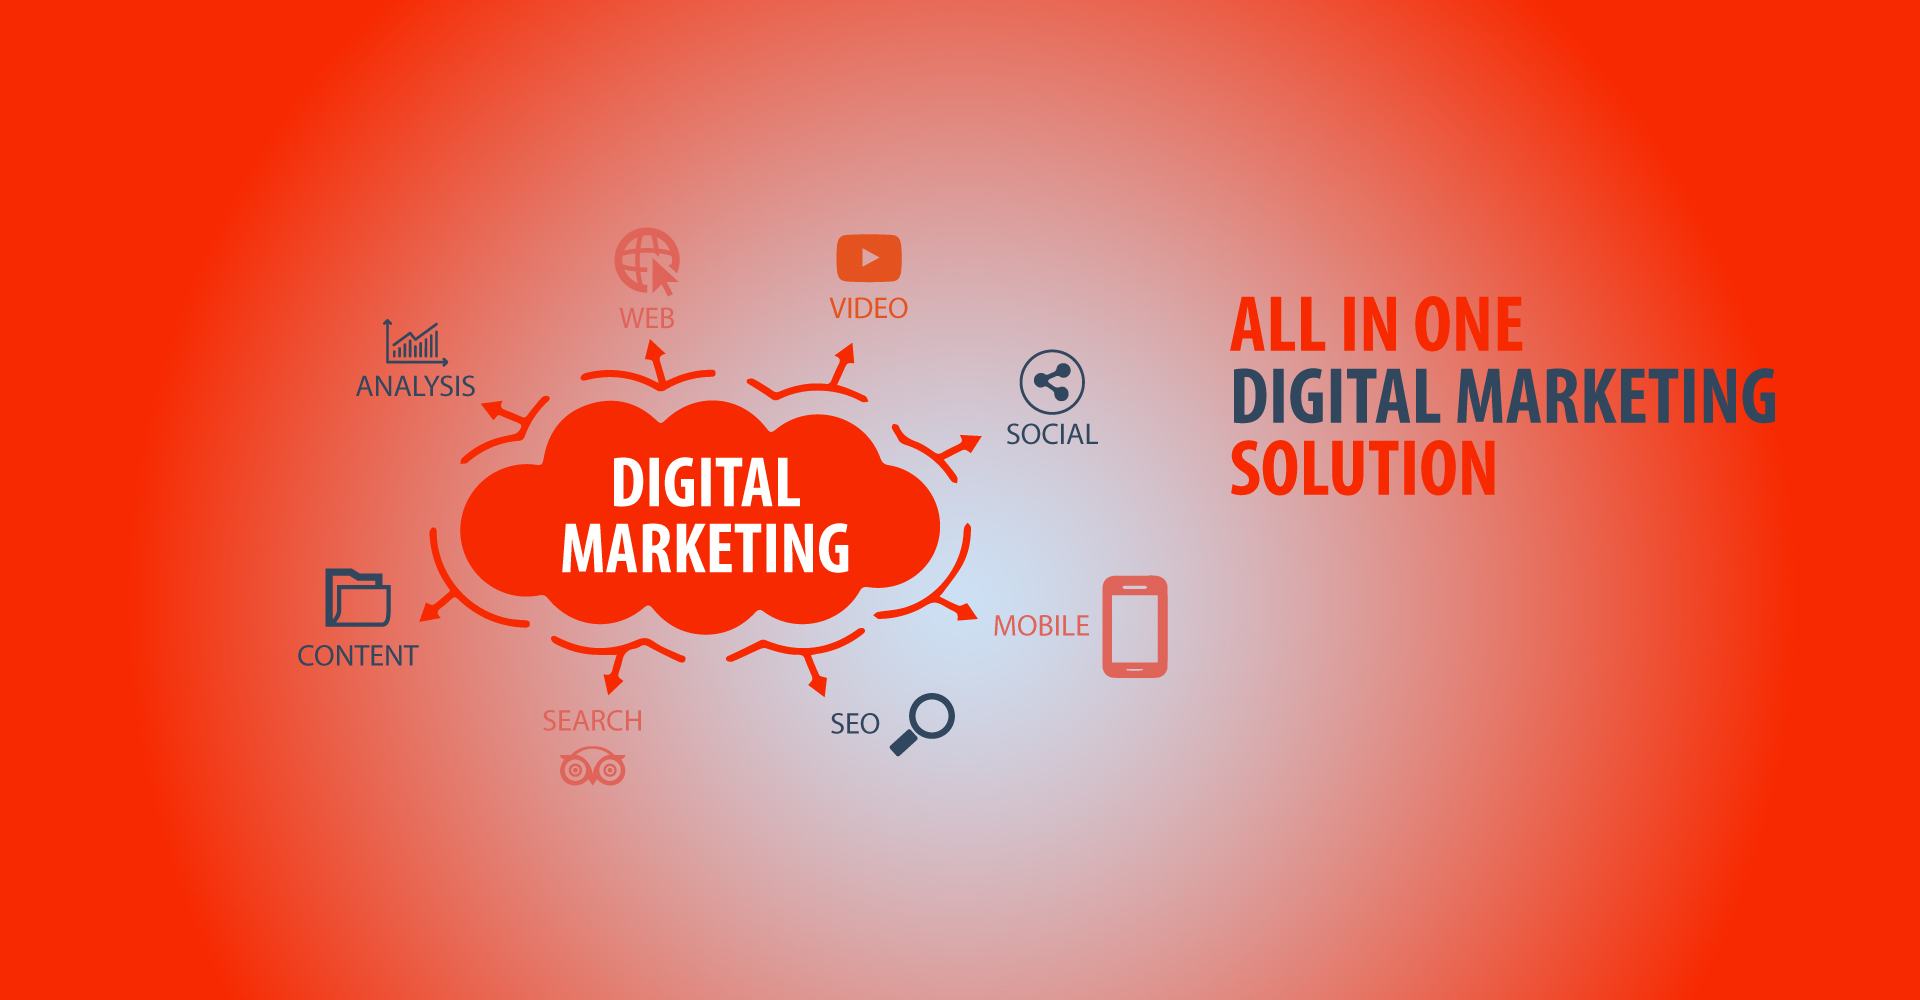 All in one Digital Marketing solution